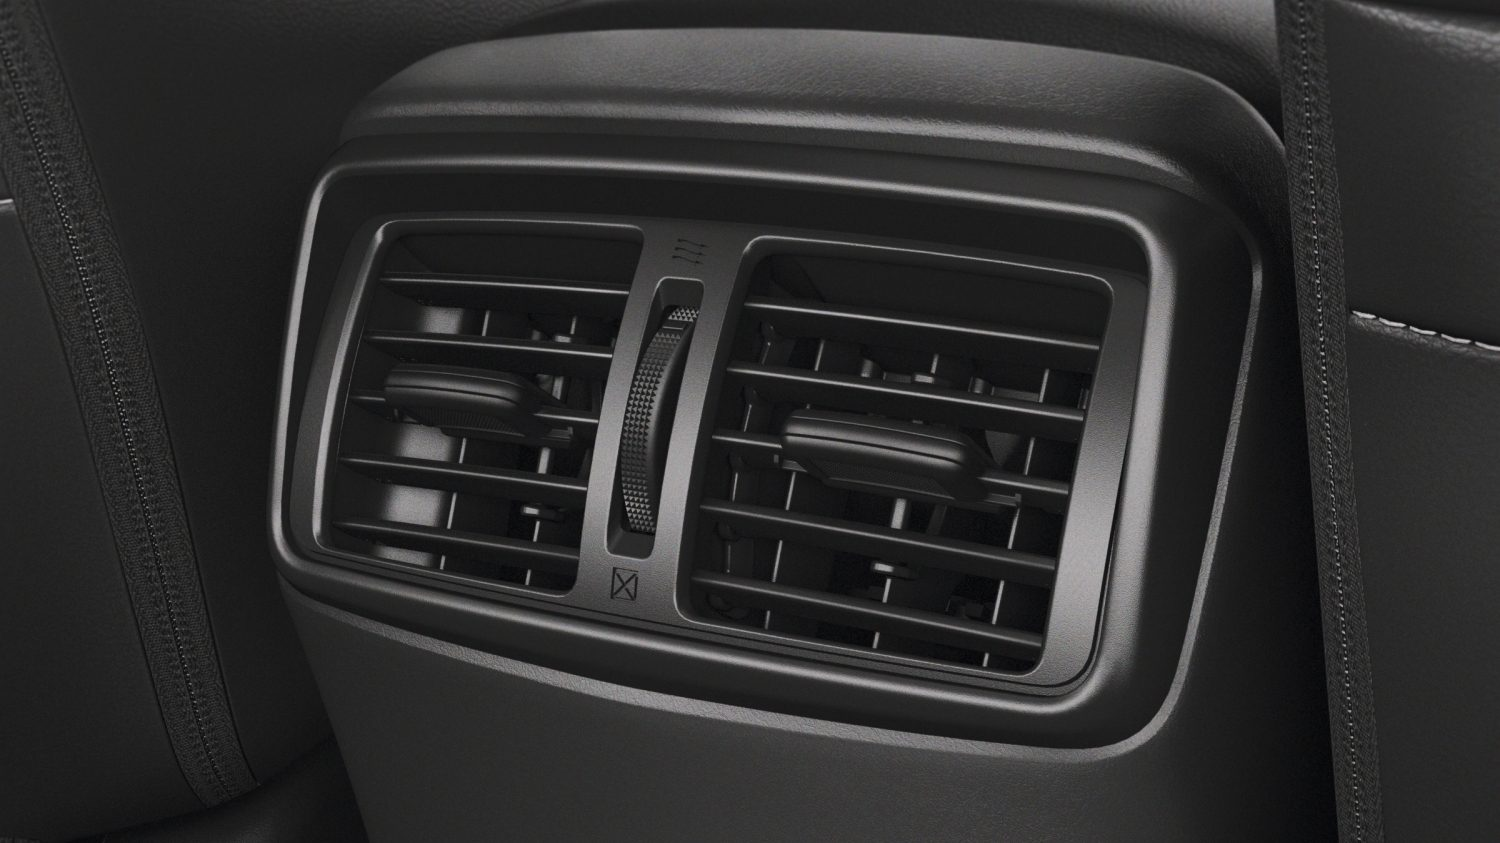 X-Trail detail shot of 2nd row air vents